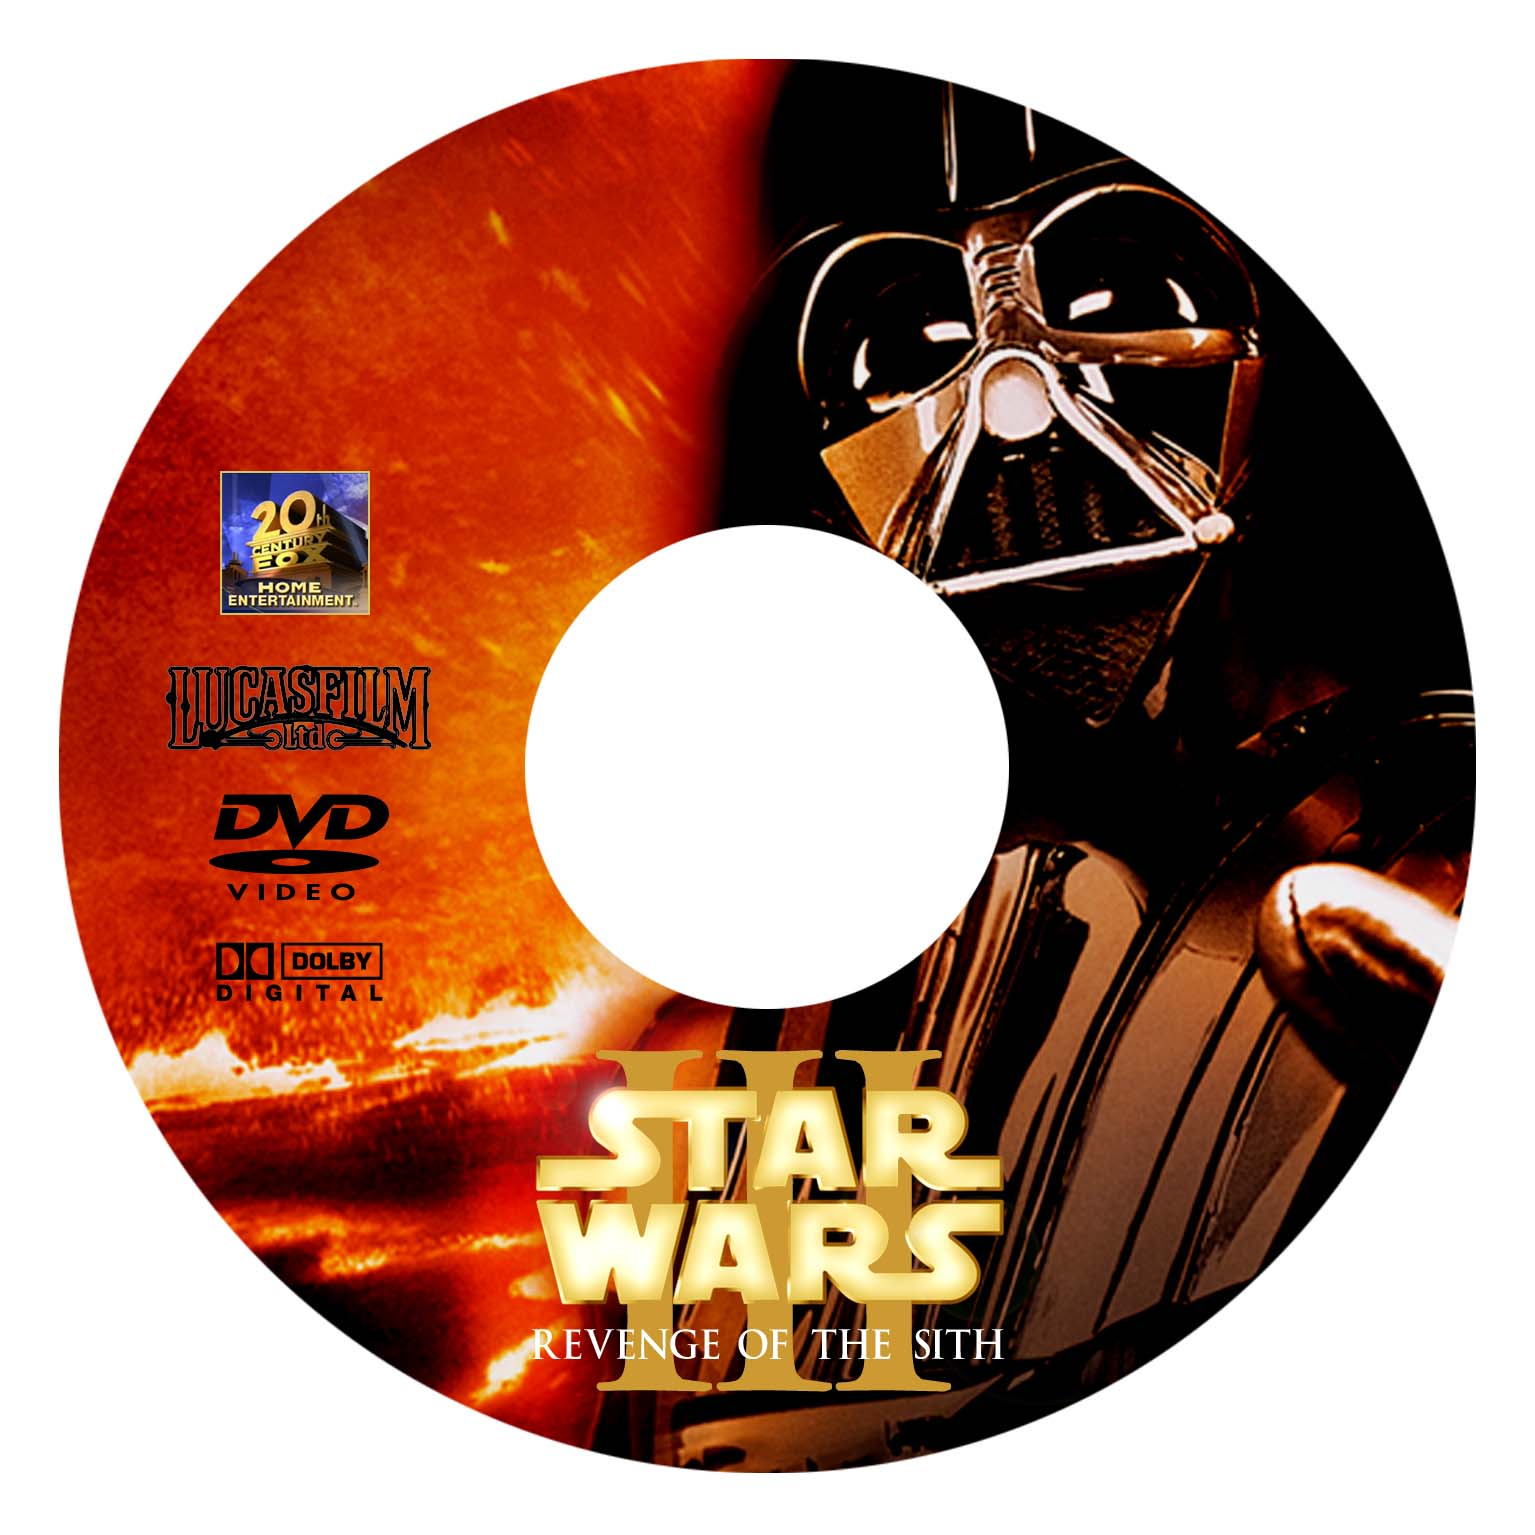 Covers Box Sk Star Wars Iii Revenge Of The Sith Dvd High Quality Dvd Blueray Movie